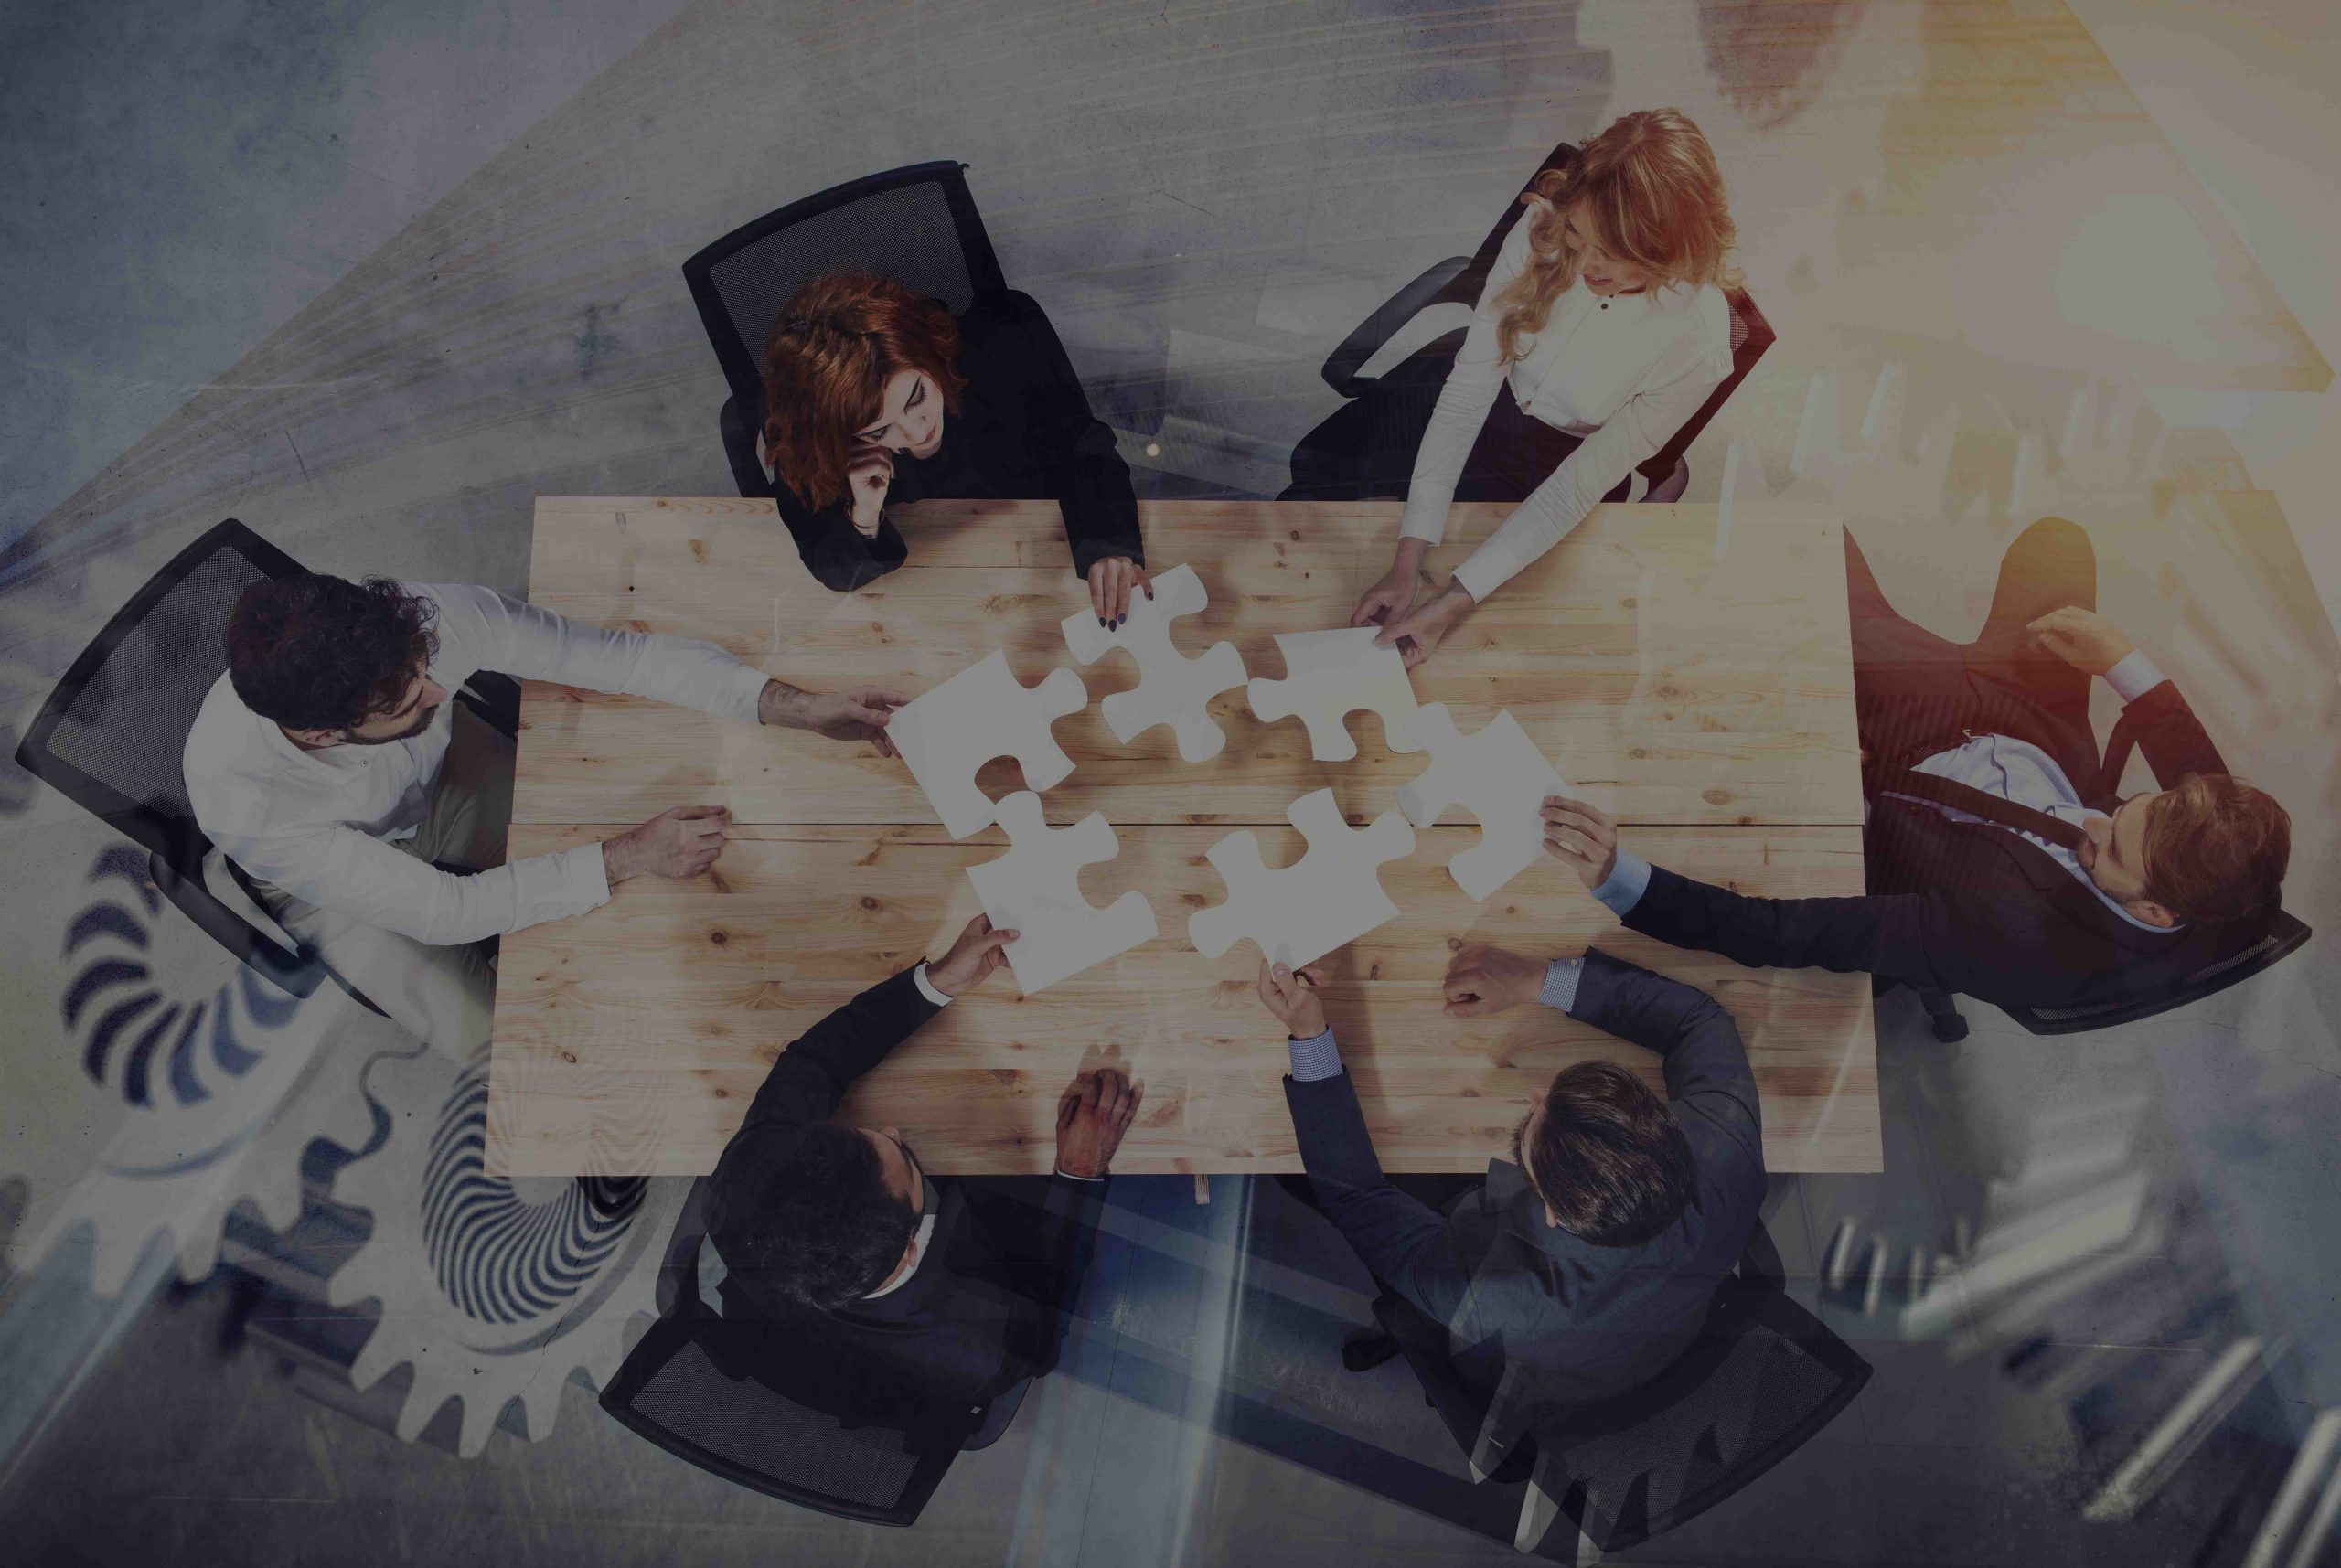 Should law firms predicate their mergers upon client interests?